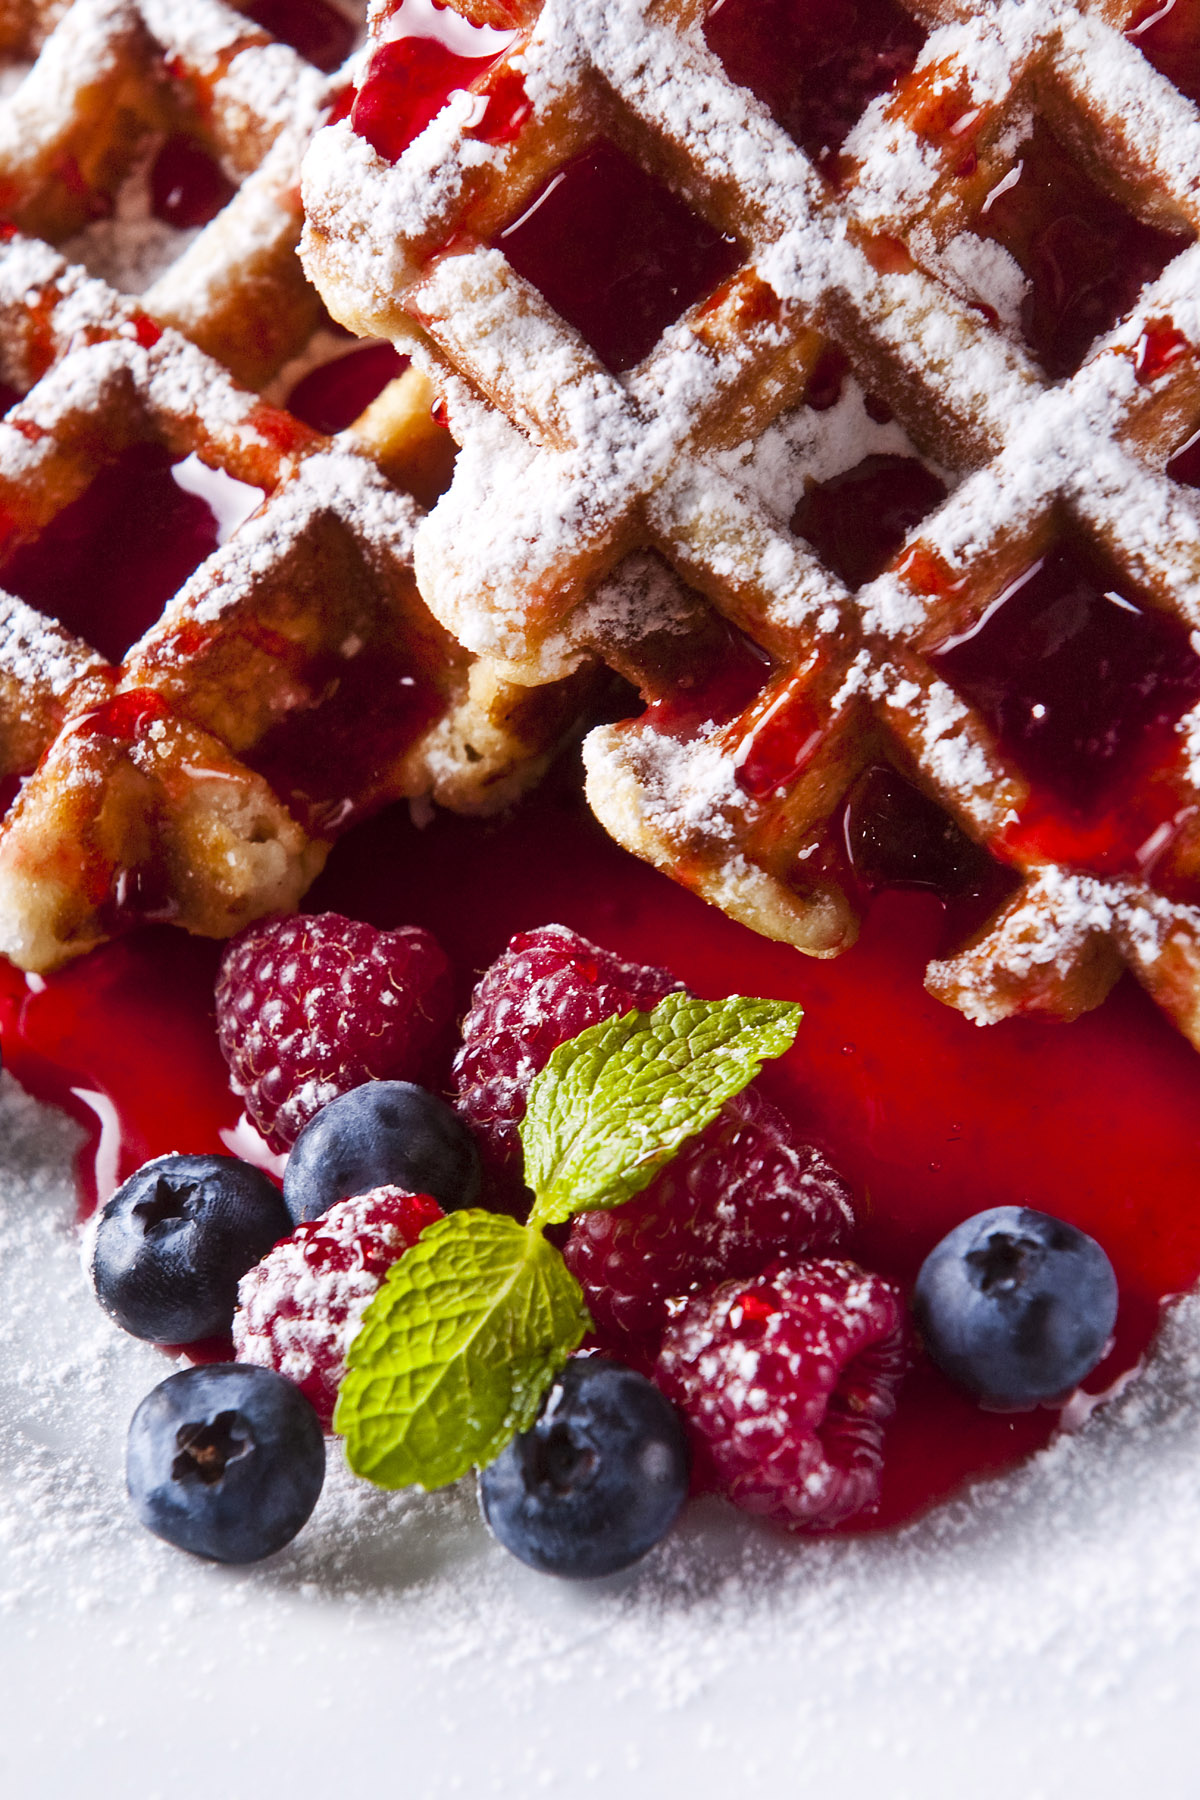 Lemon Poppyseed Waffles with Blueberry Citrus Syrup